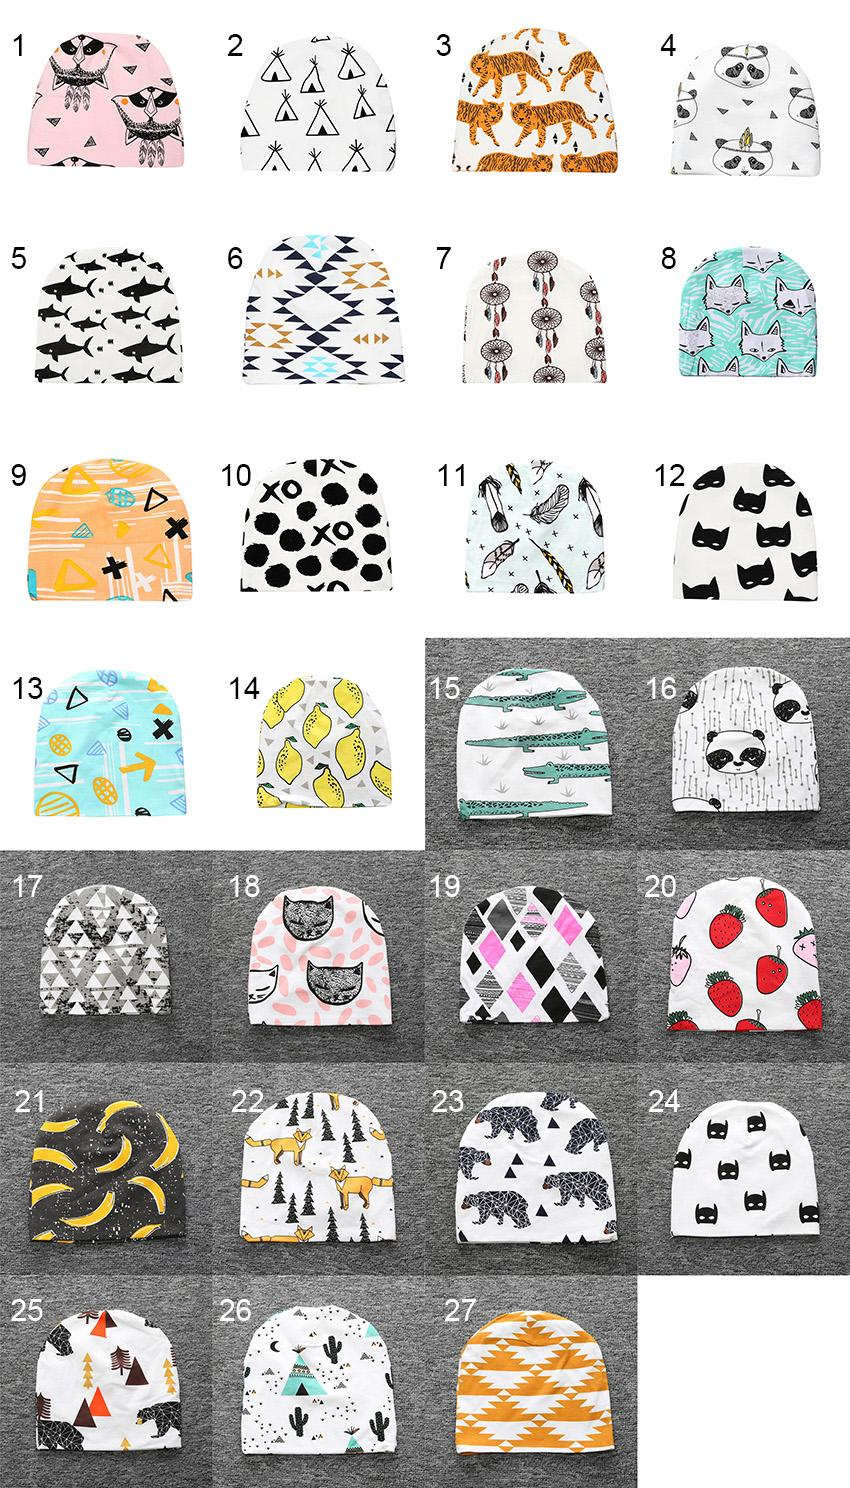 Children's Hats Scarf Suit 27 Designs Spring Autumn Kids Caps Fitted Hat Cartoon Designers Hats Cotton Sombreros Chapeau for Boy Girl 0-3T